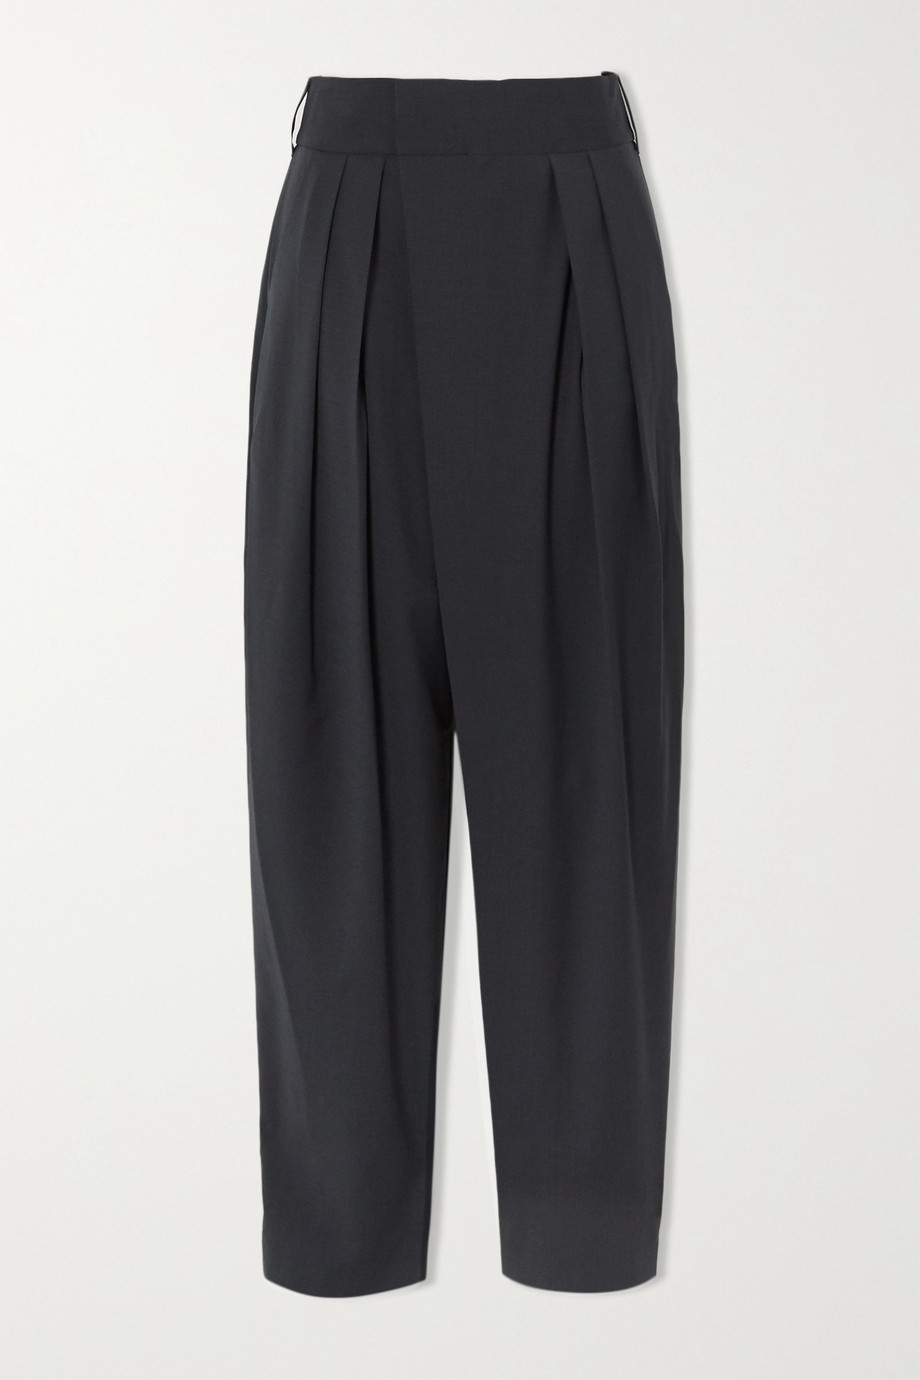 LOW CLASSIC Pleated woven pants